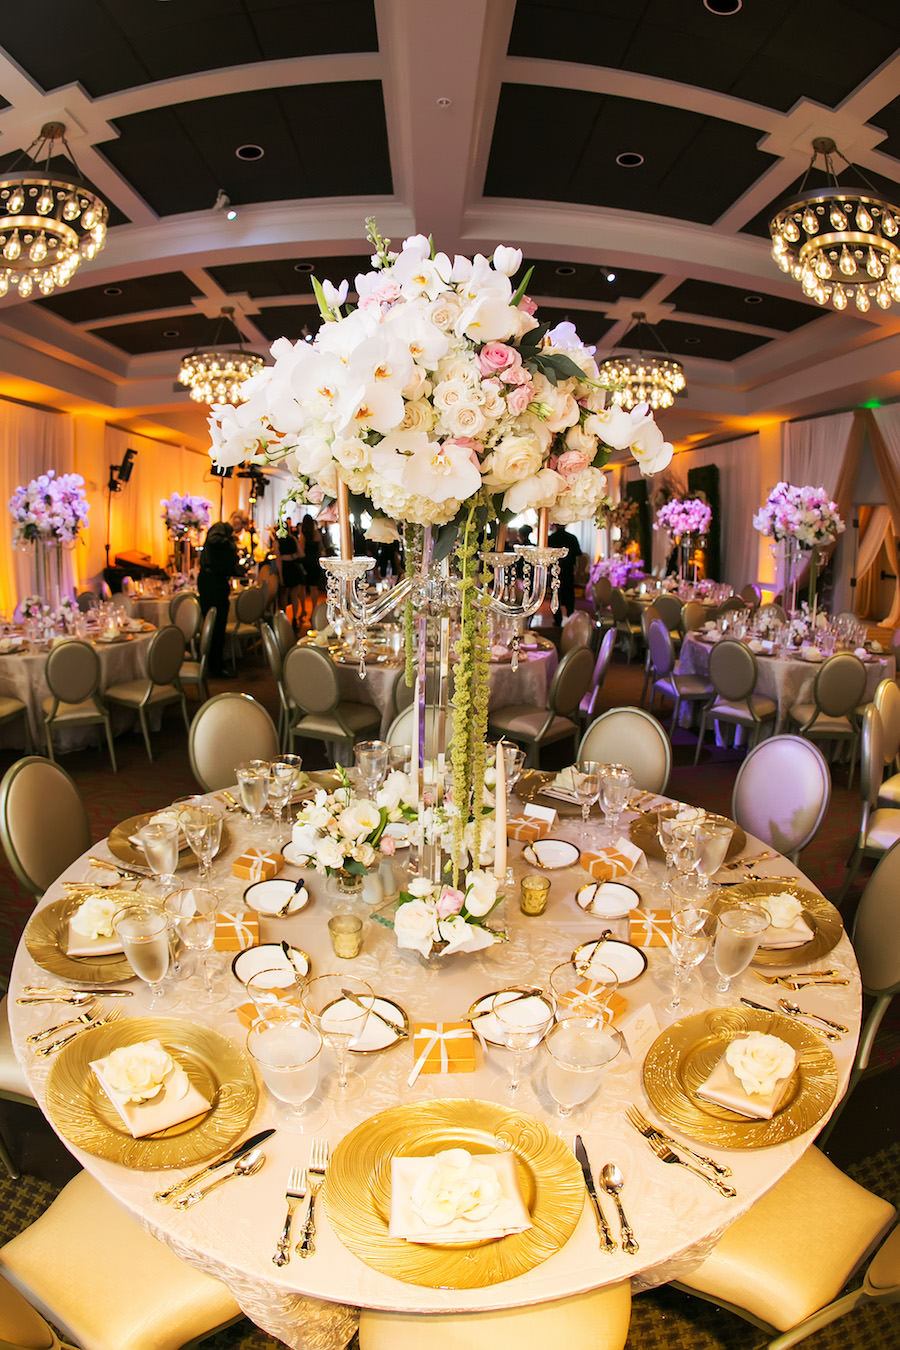 Gold and Ivory Wedding Reception with Gold Chargers, Gold Satin Napkins and Tall Wedding Centerpieces with Pink and Ivory Roses   St. Petersburg Linen Rentals by Over The Top Linens   Glassware, China and Flatware by A Chair Affair   Photography by Limelight Photography